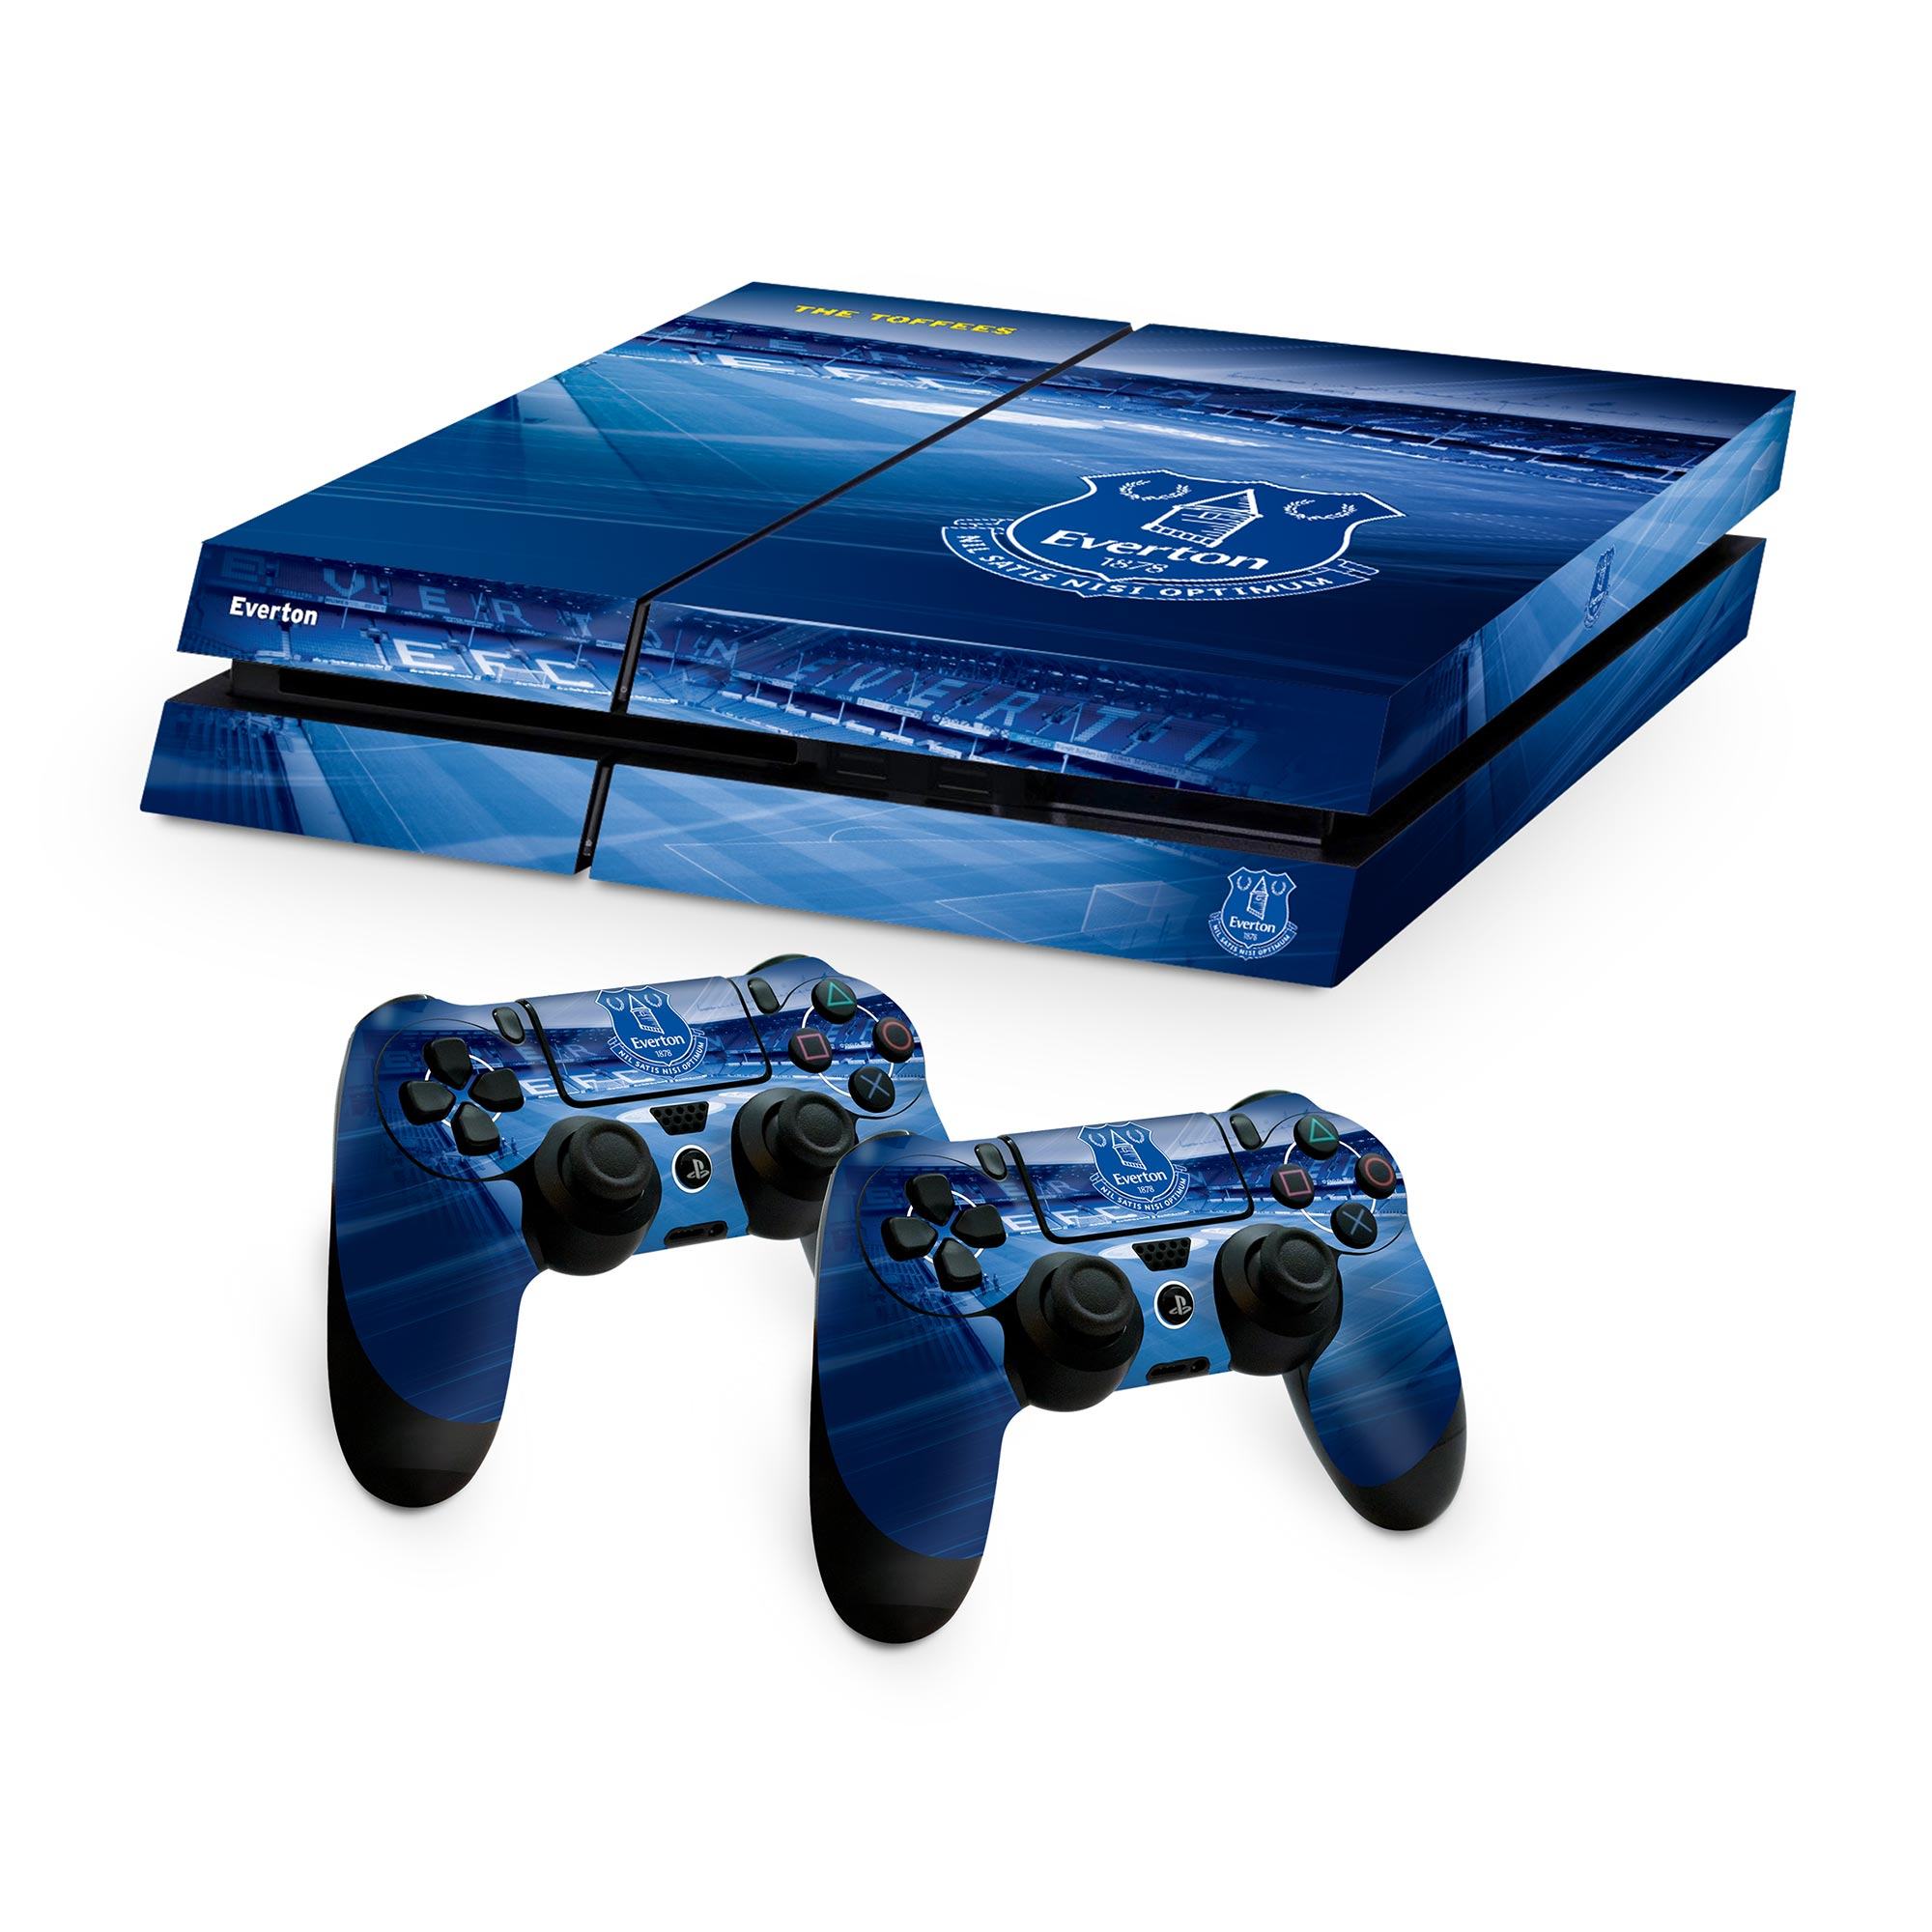 Everton PS4 Controller and Console Skin Set